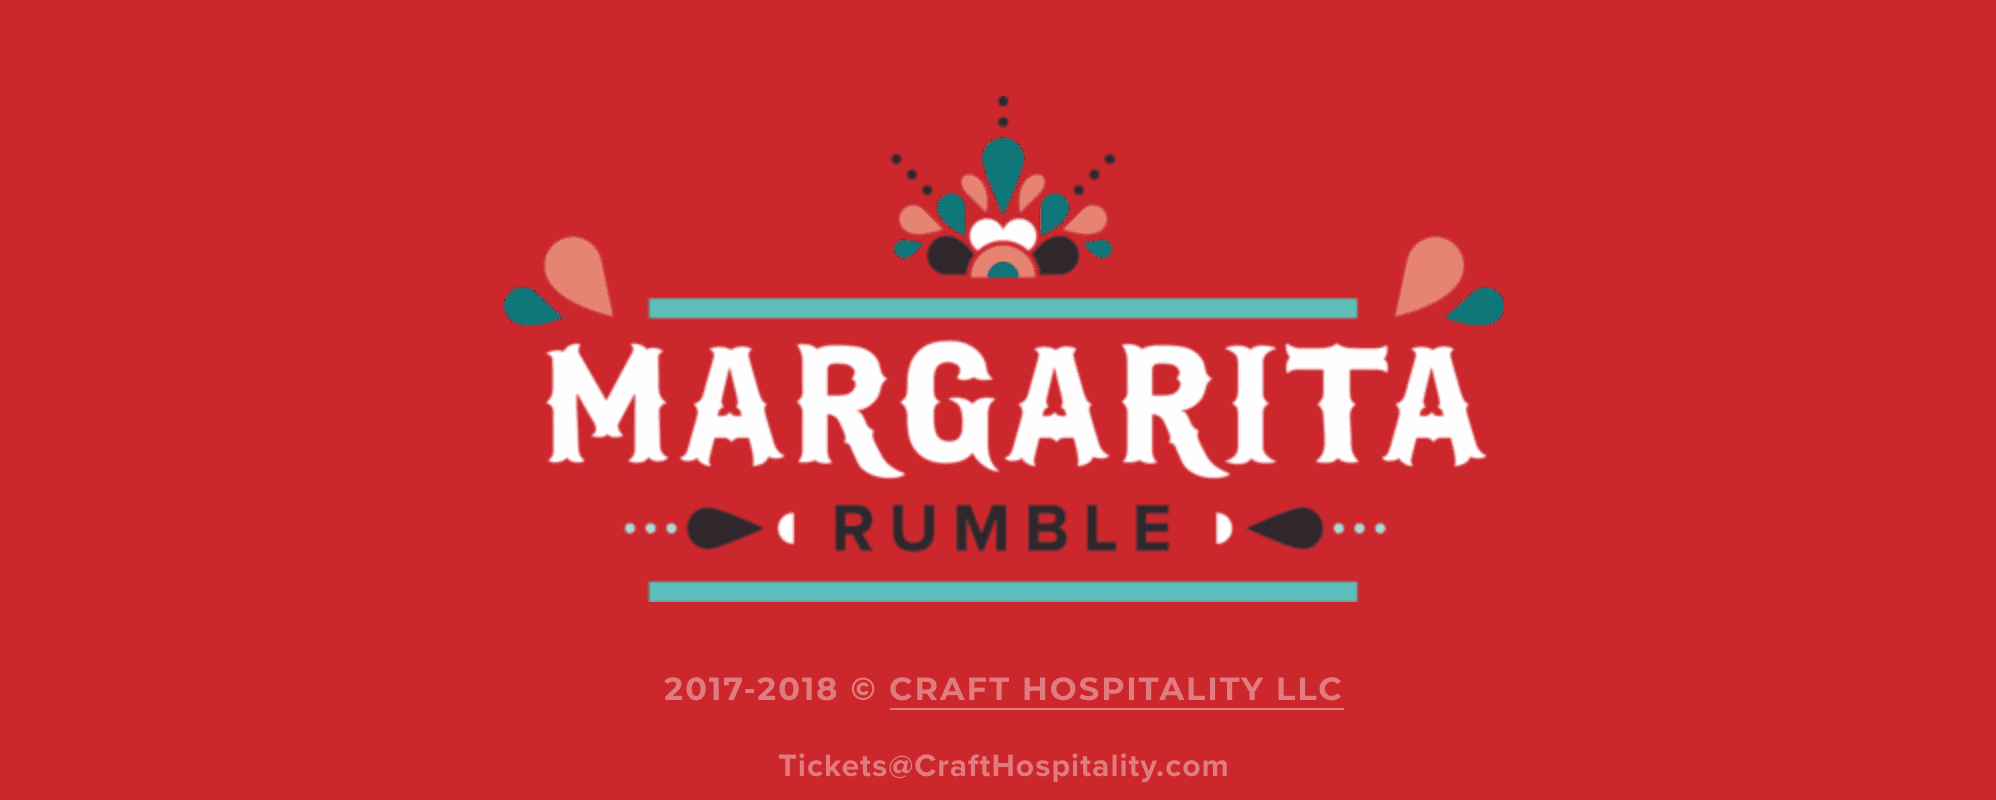 San Francisco Margarita Rumble